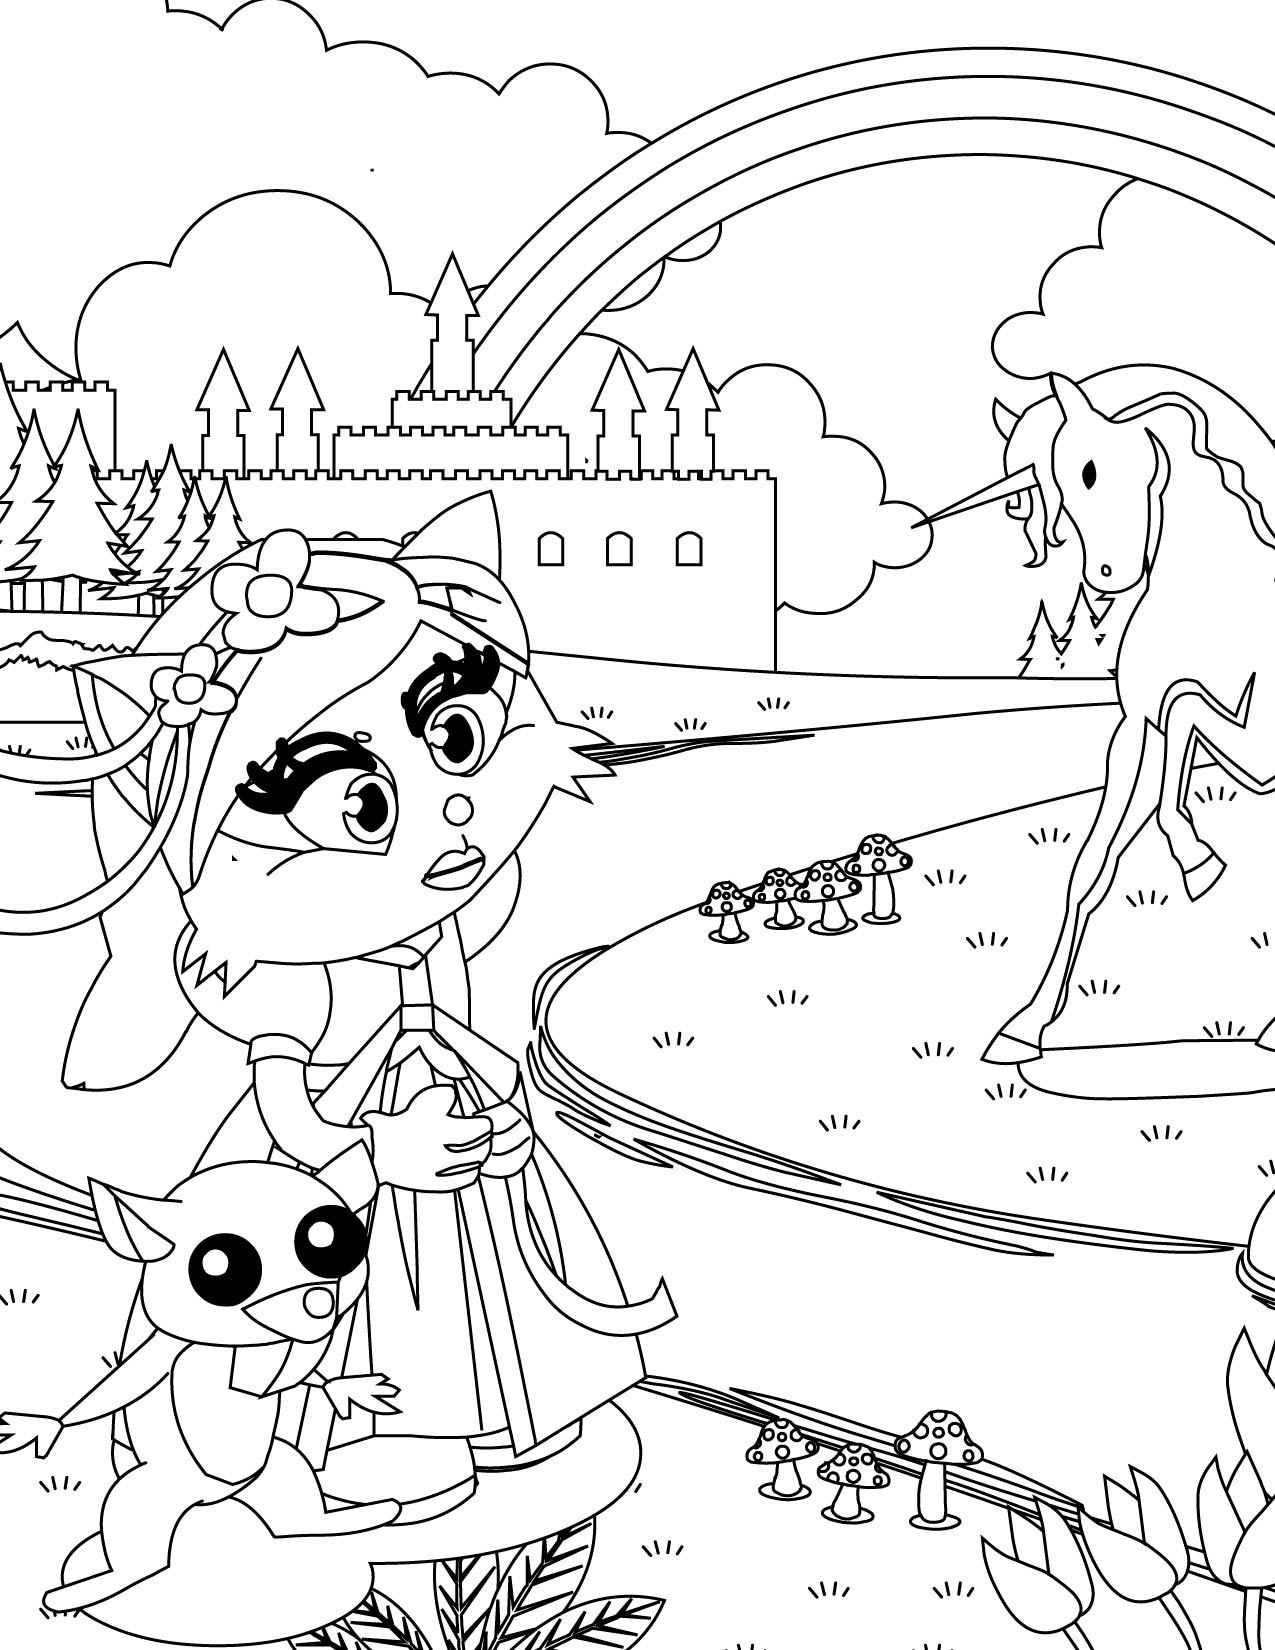 1275x1650 Appealing Cat Princess Coloring Printable Image Of Page Style